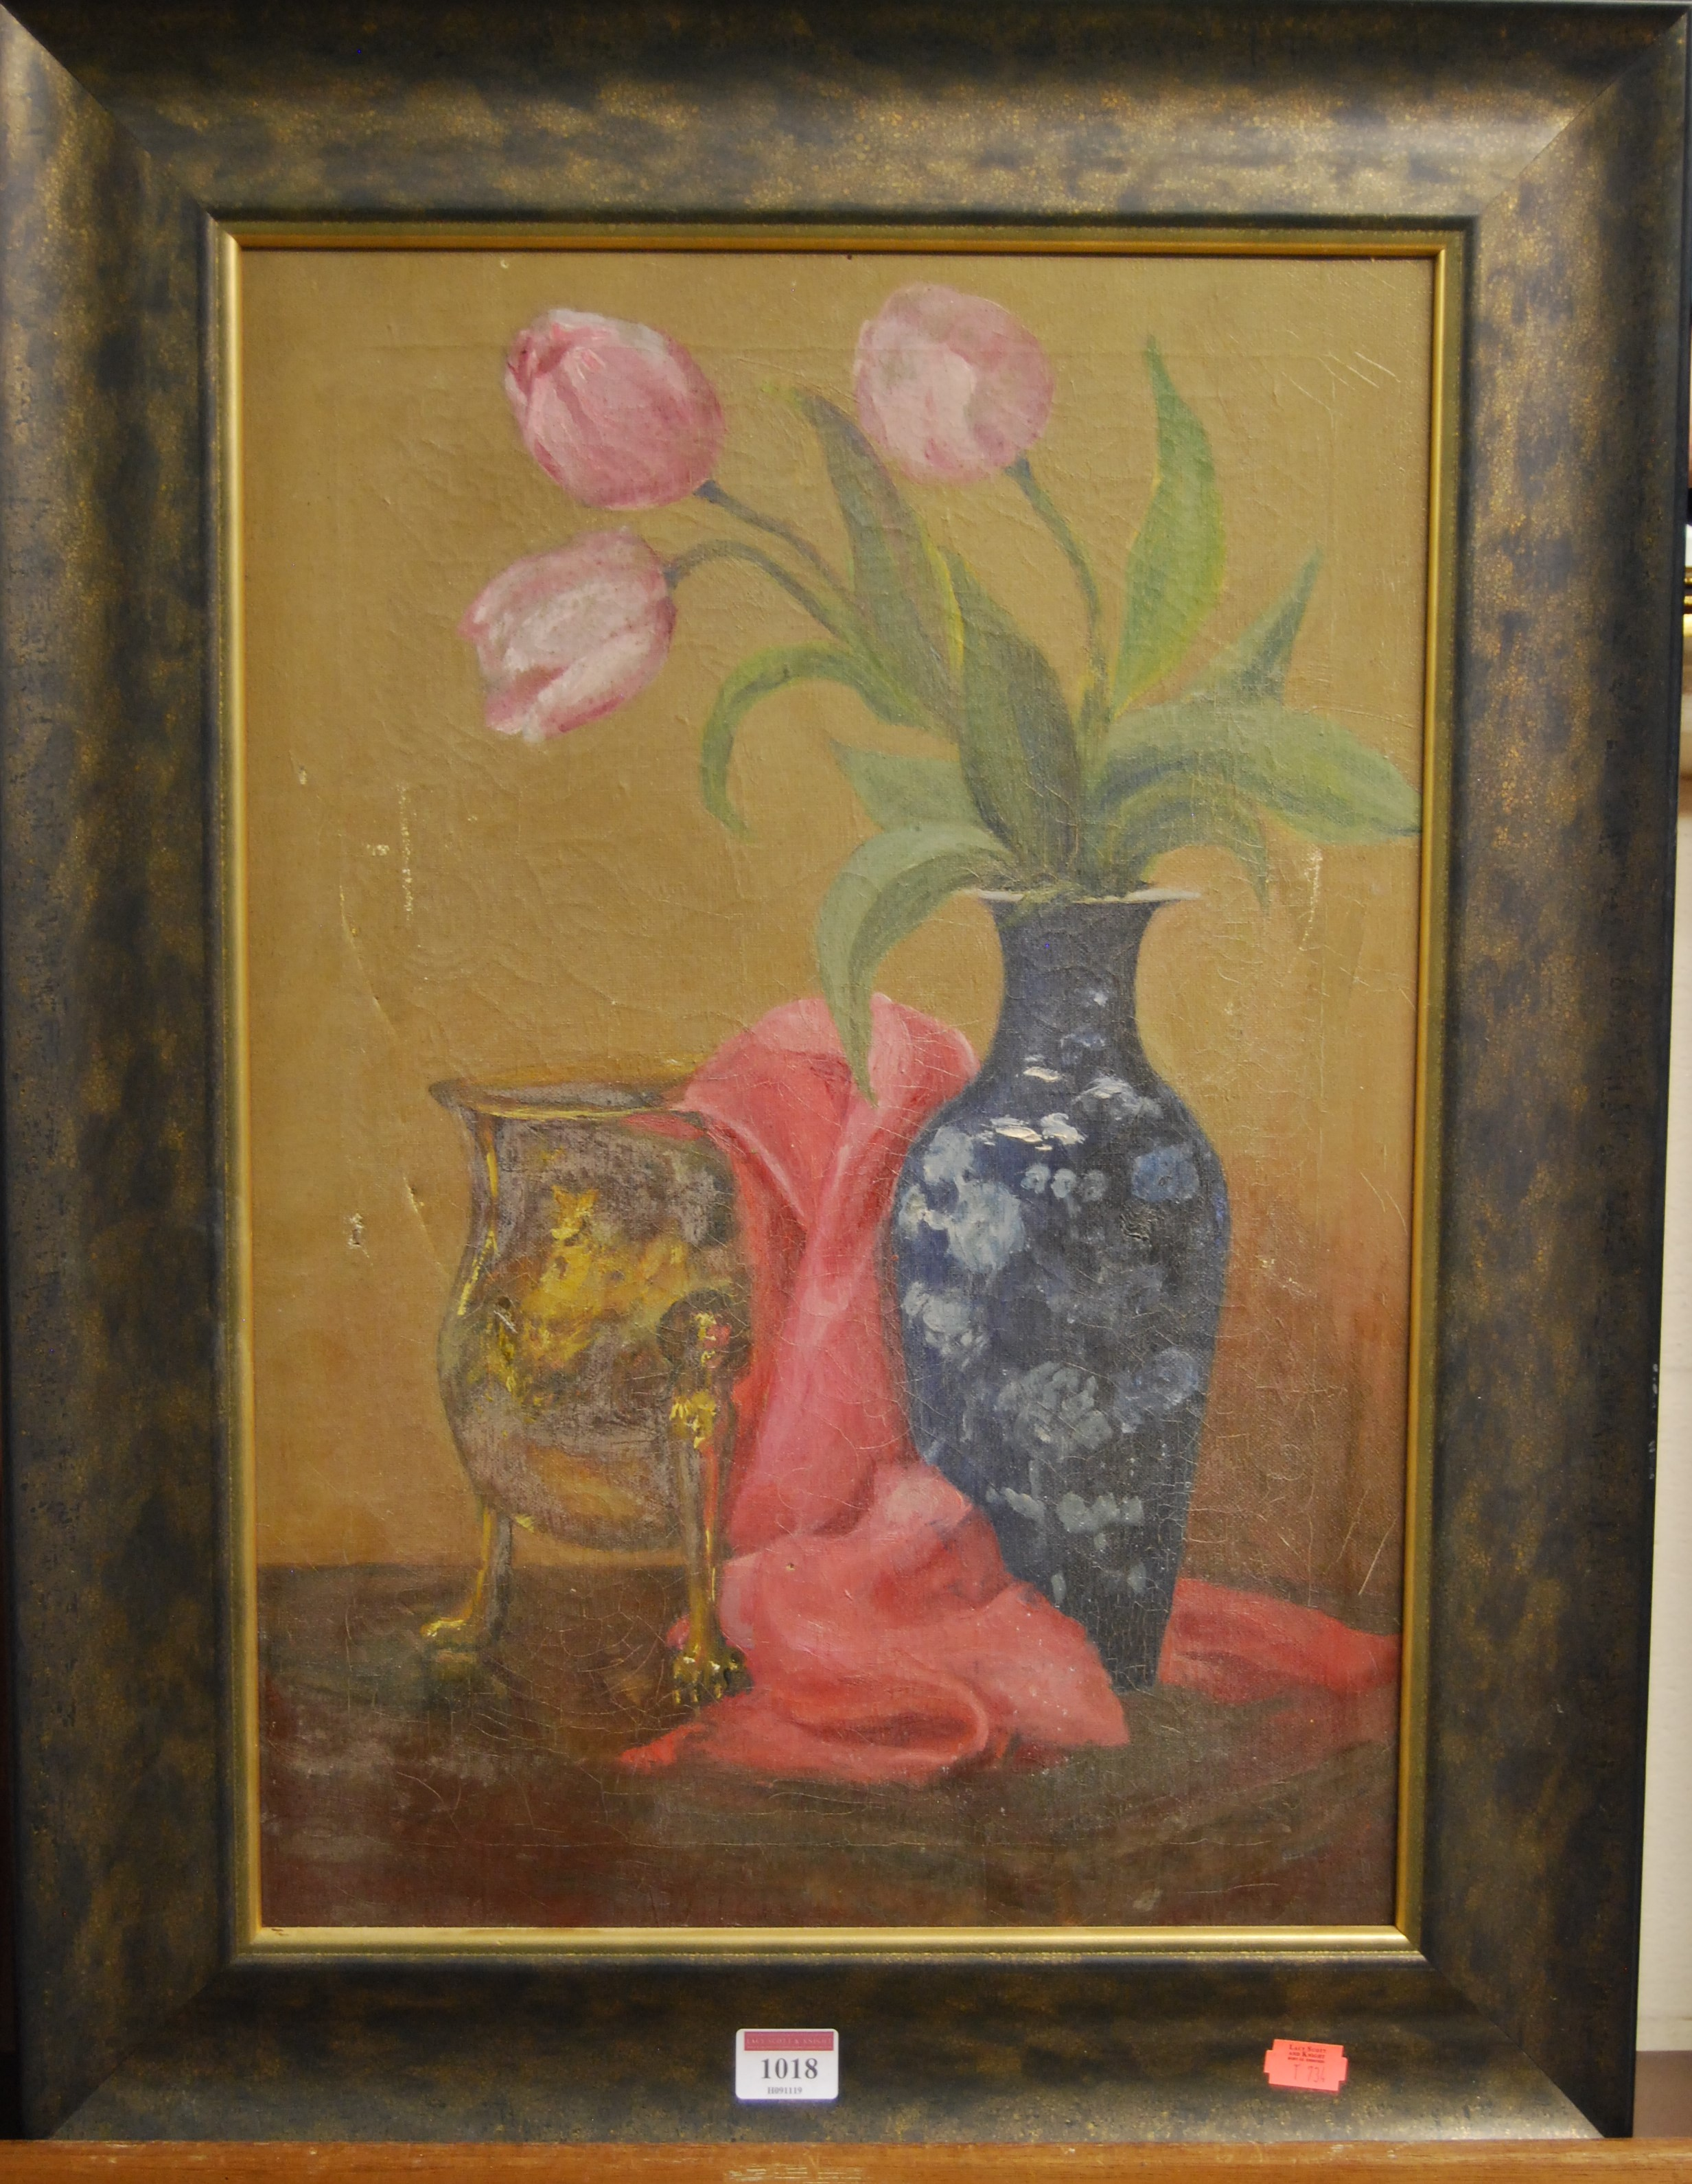 Lot 1018 - Late 20th century school - Still life with flowers in a vase, oil on canvas, 50 x 35cm